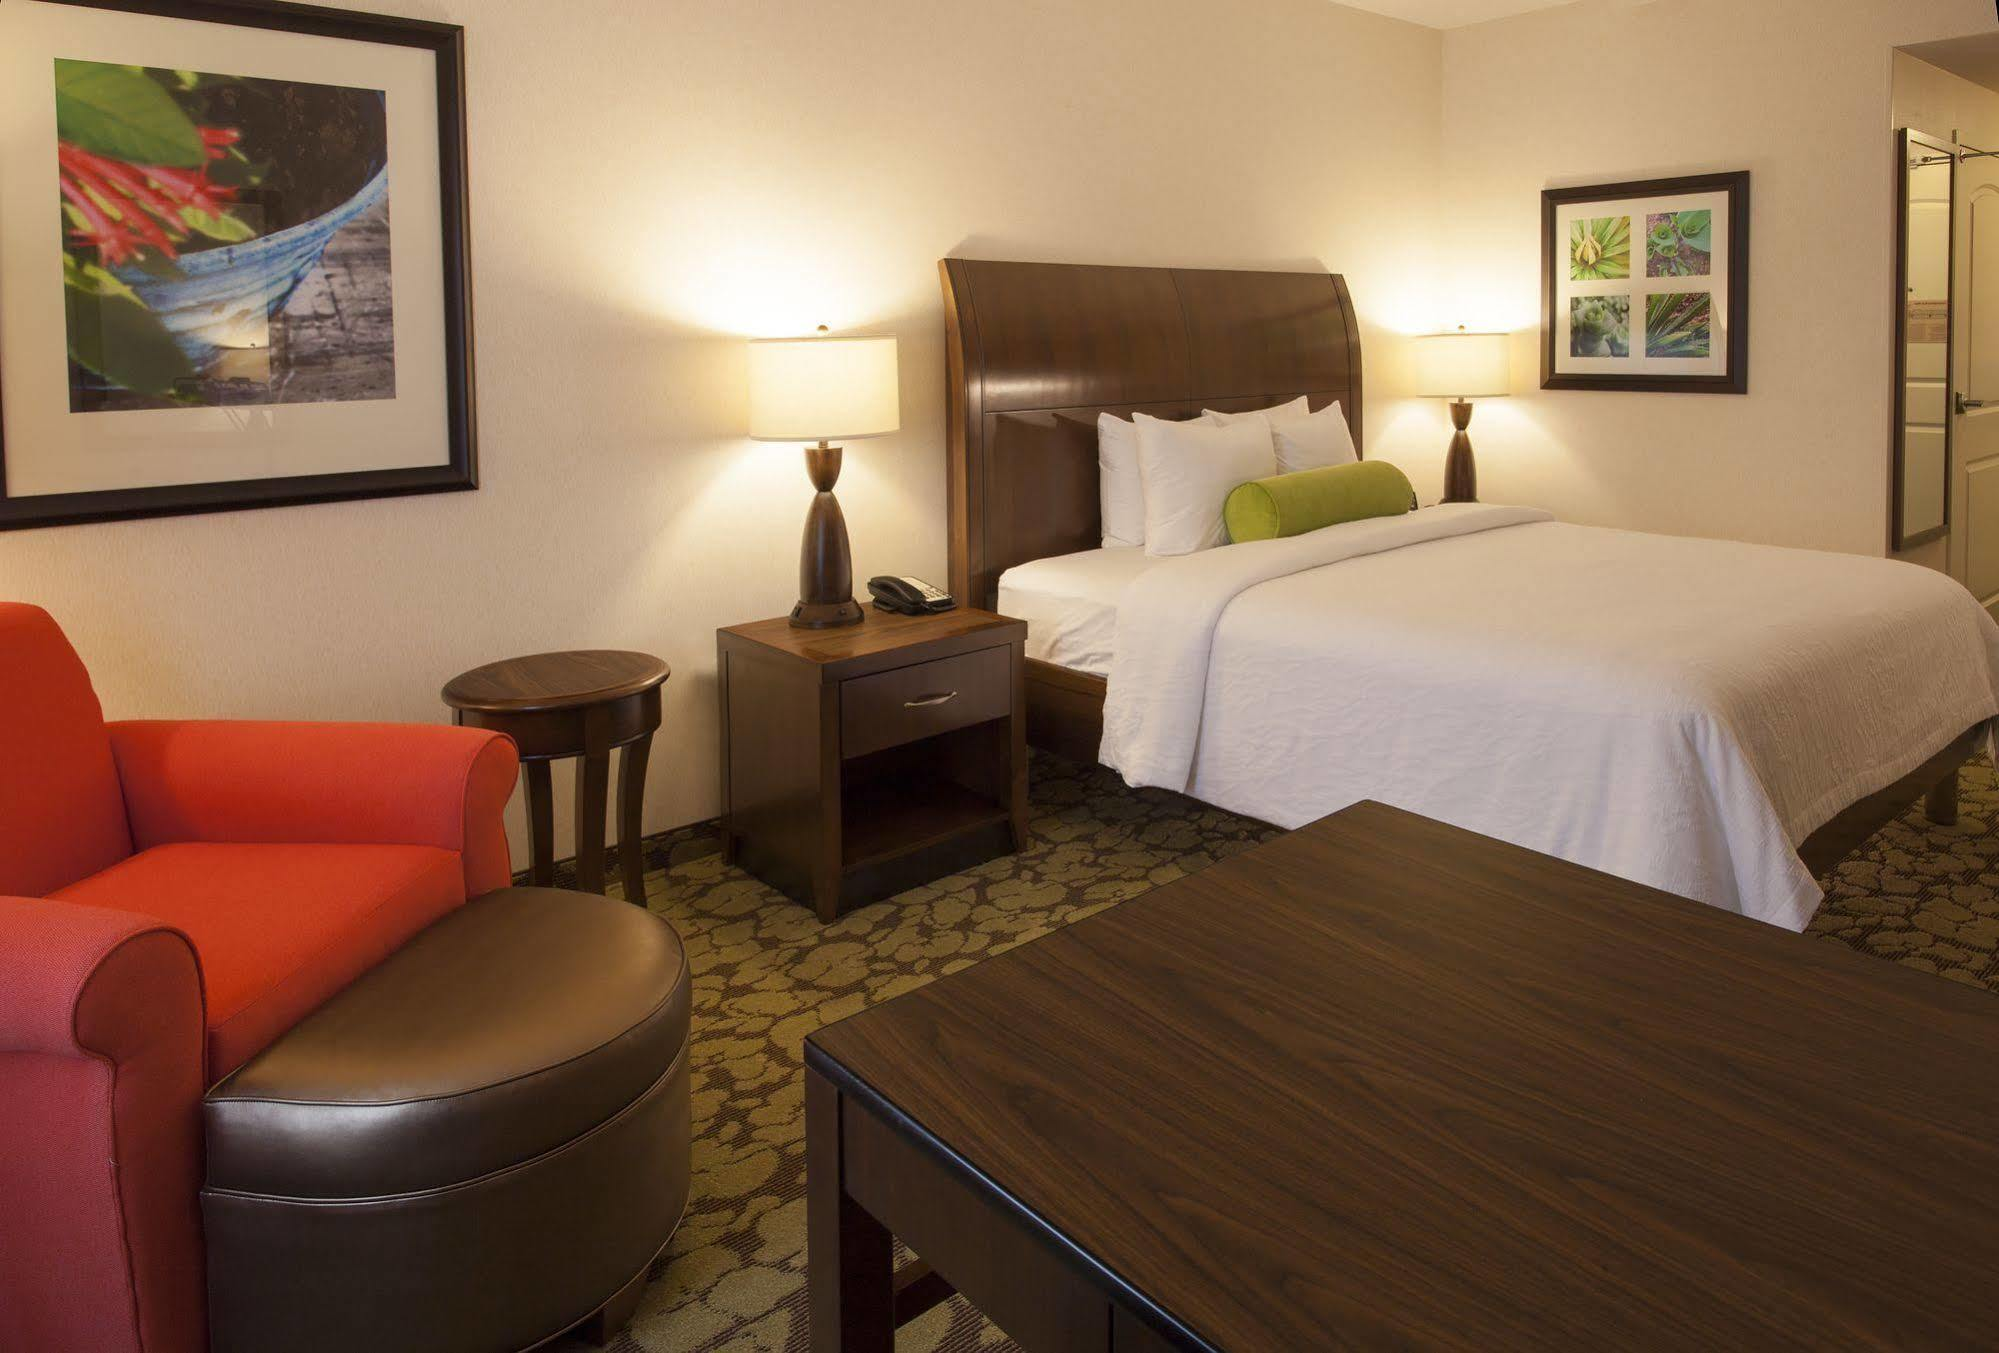 HILTON GARDEN INN VALLEY FORGE/OAKS, PHOENIXVILLE ***